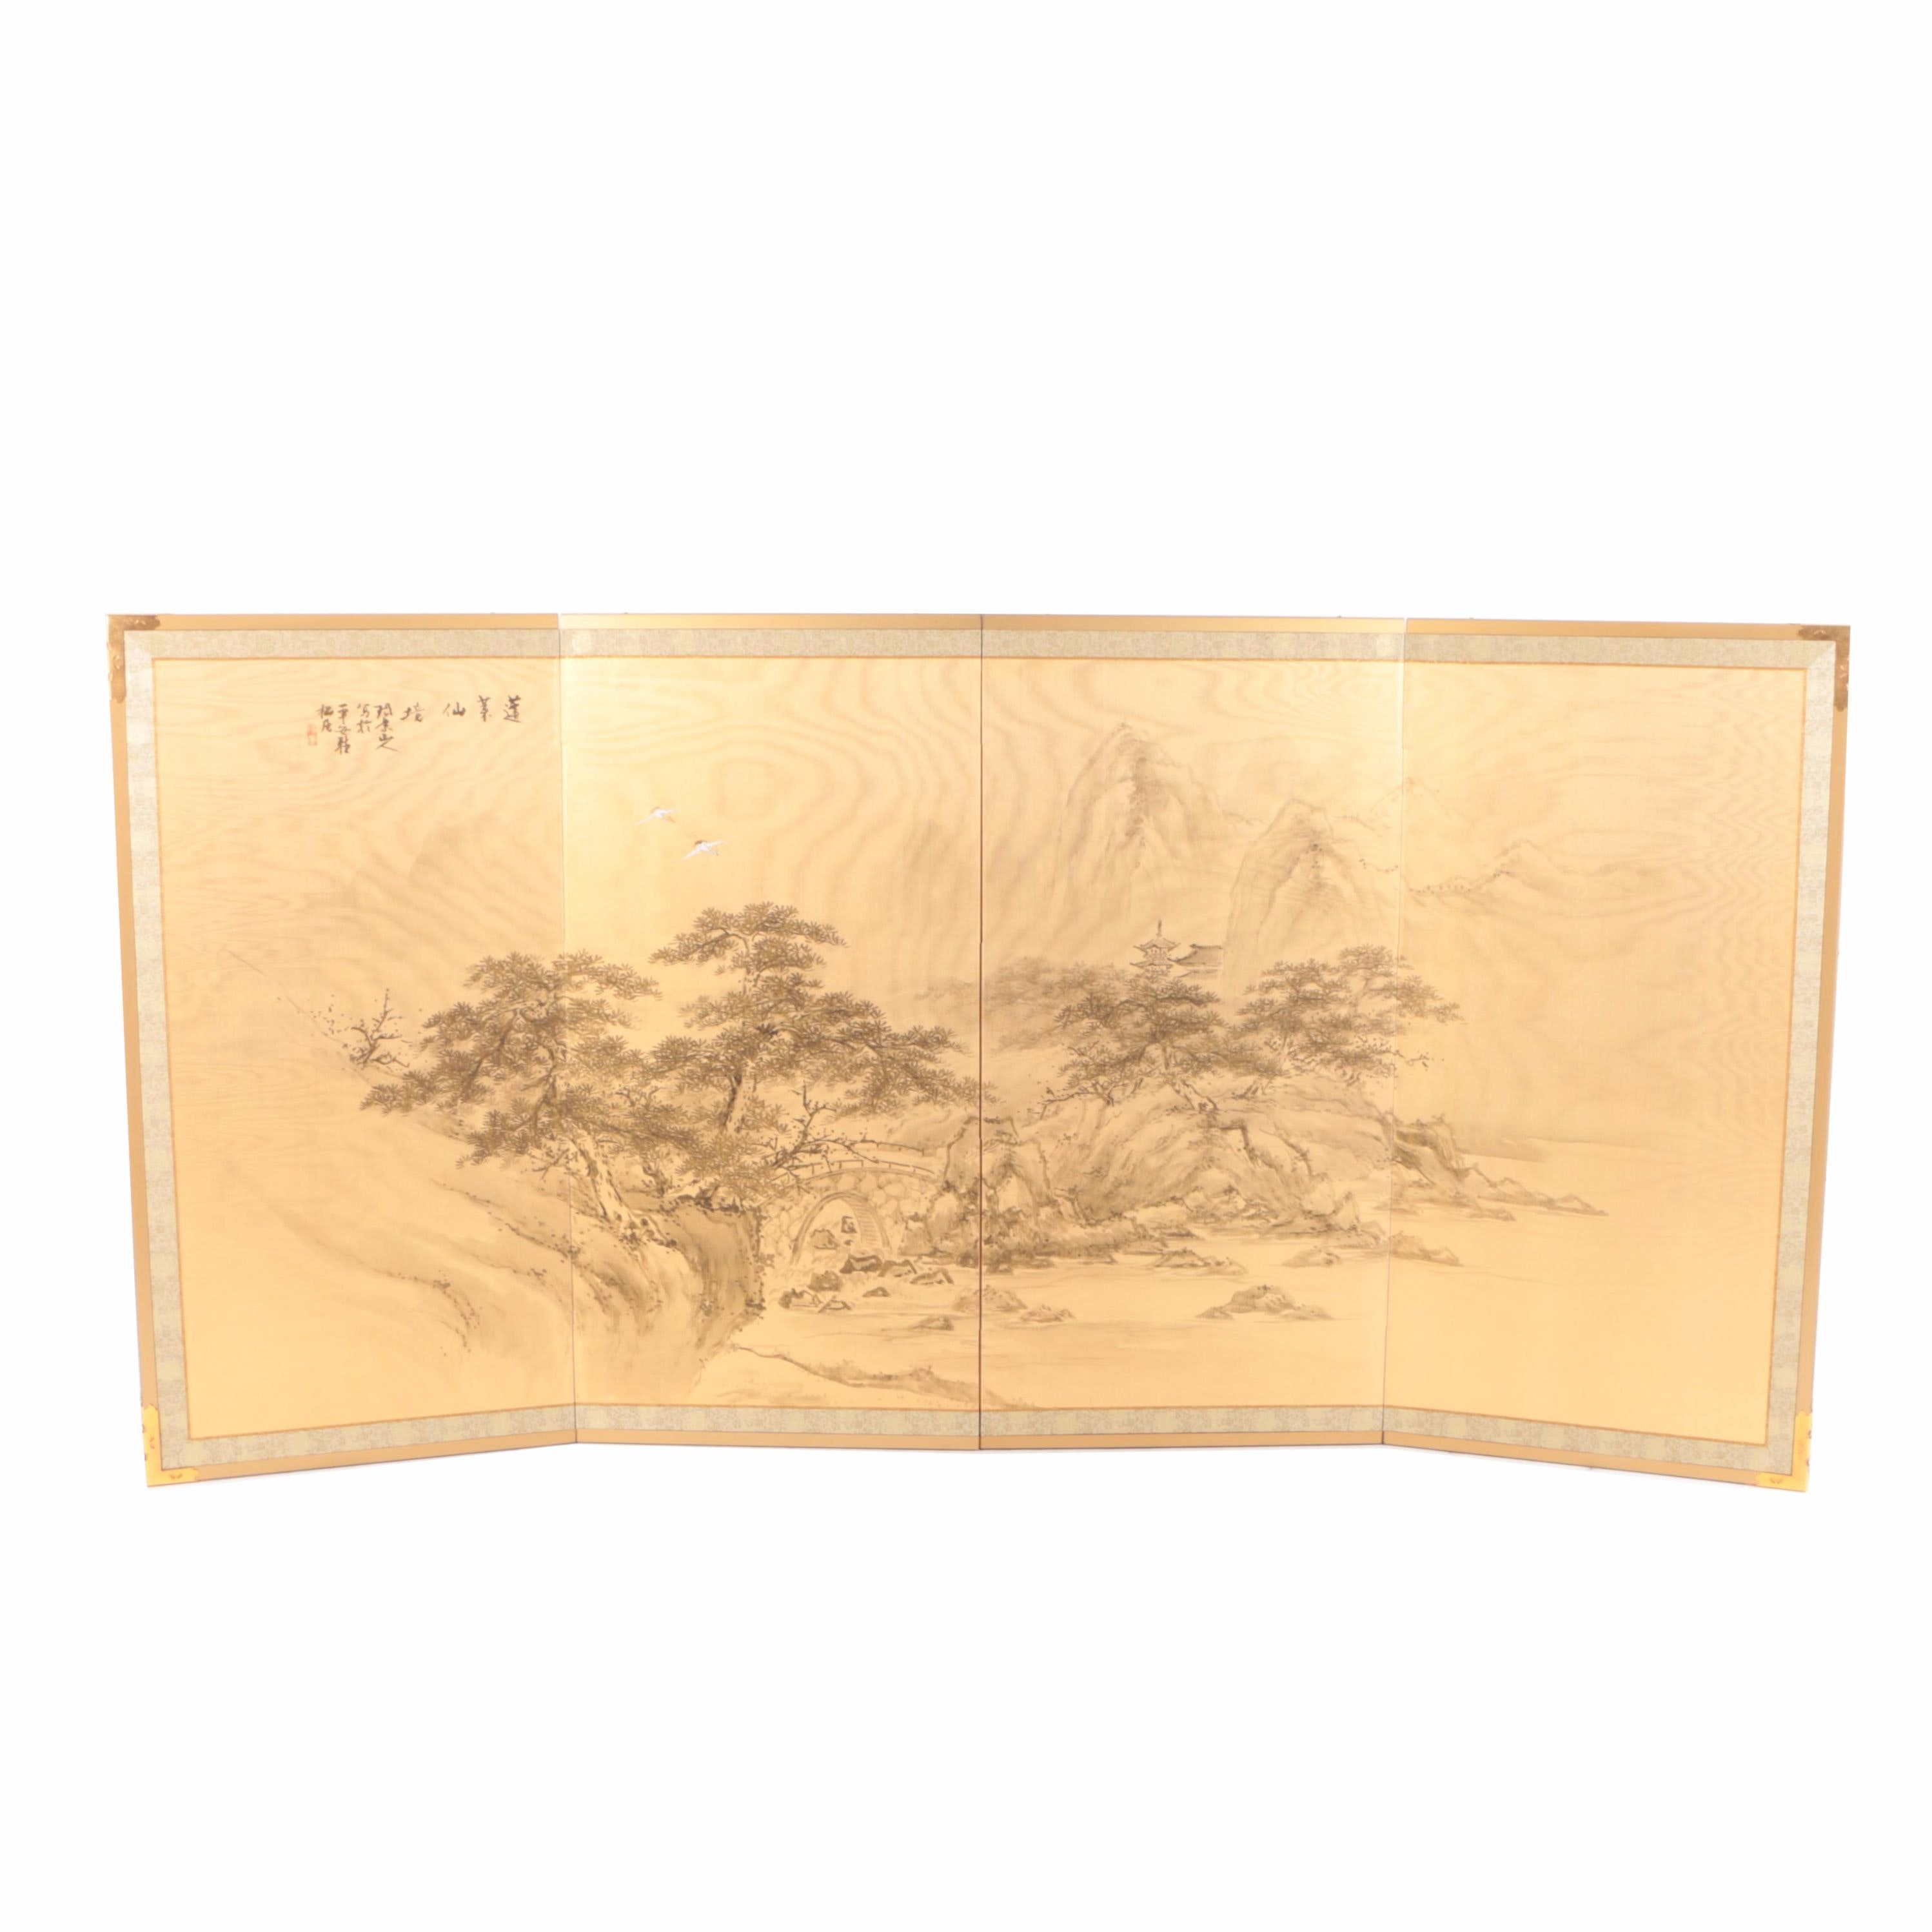 East Asian Four-Panel Folding Screen with Ink Wash Landscape Scene on Silk